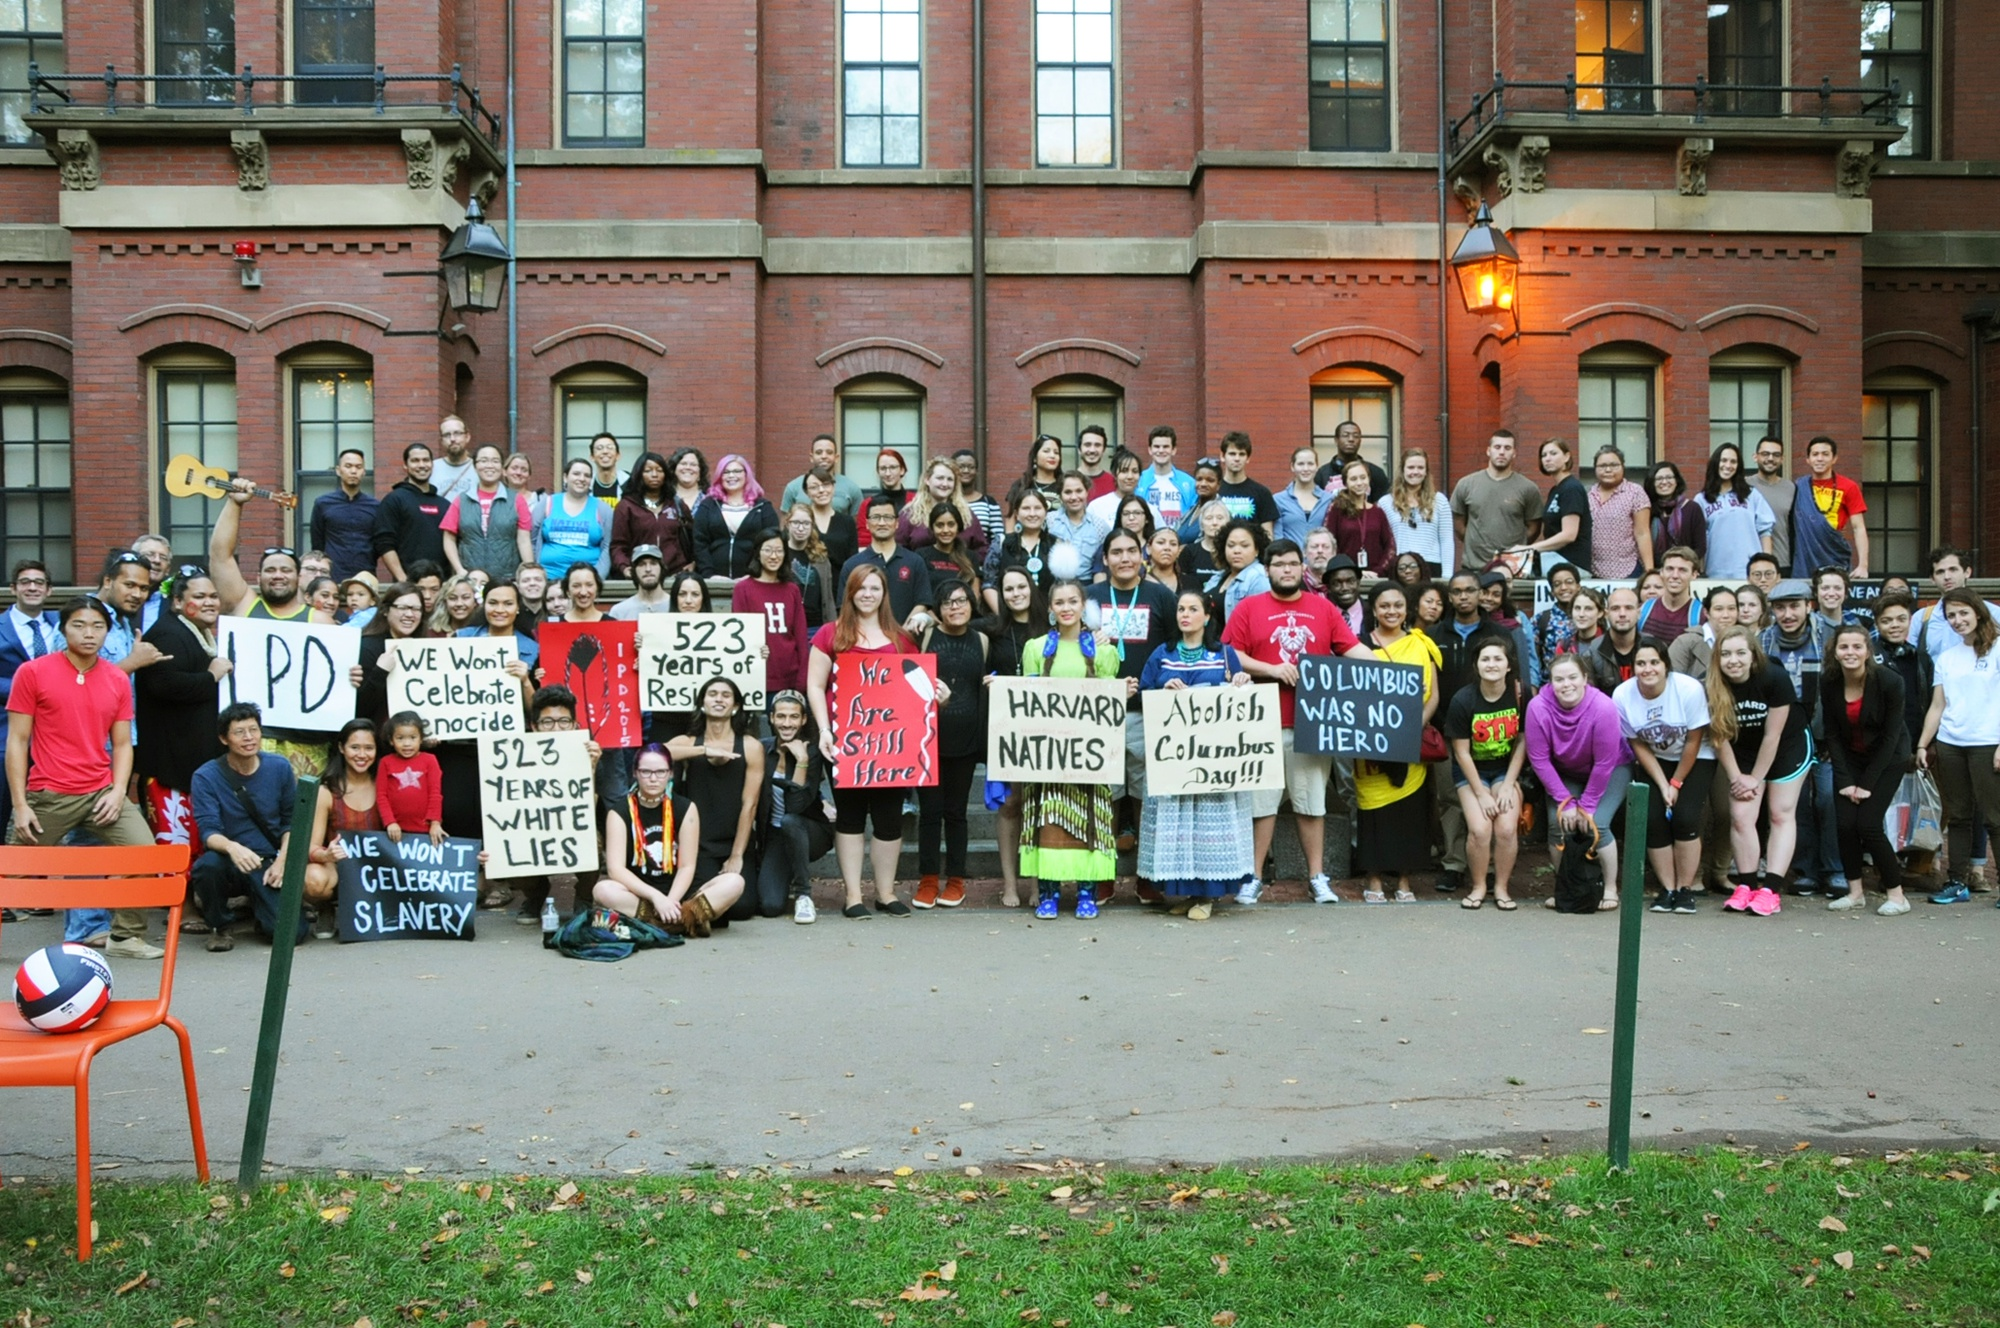 Performers and audience members at the Indigenous Peoples' Day celebration pose for a photo in Harvard Yard on Monday.